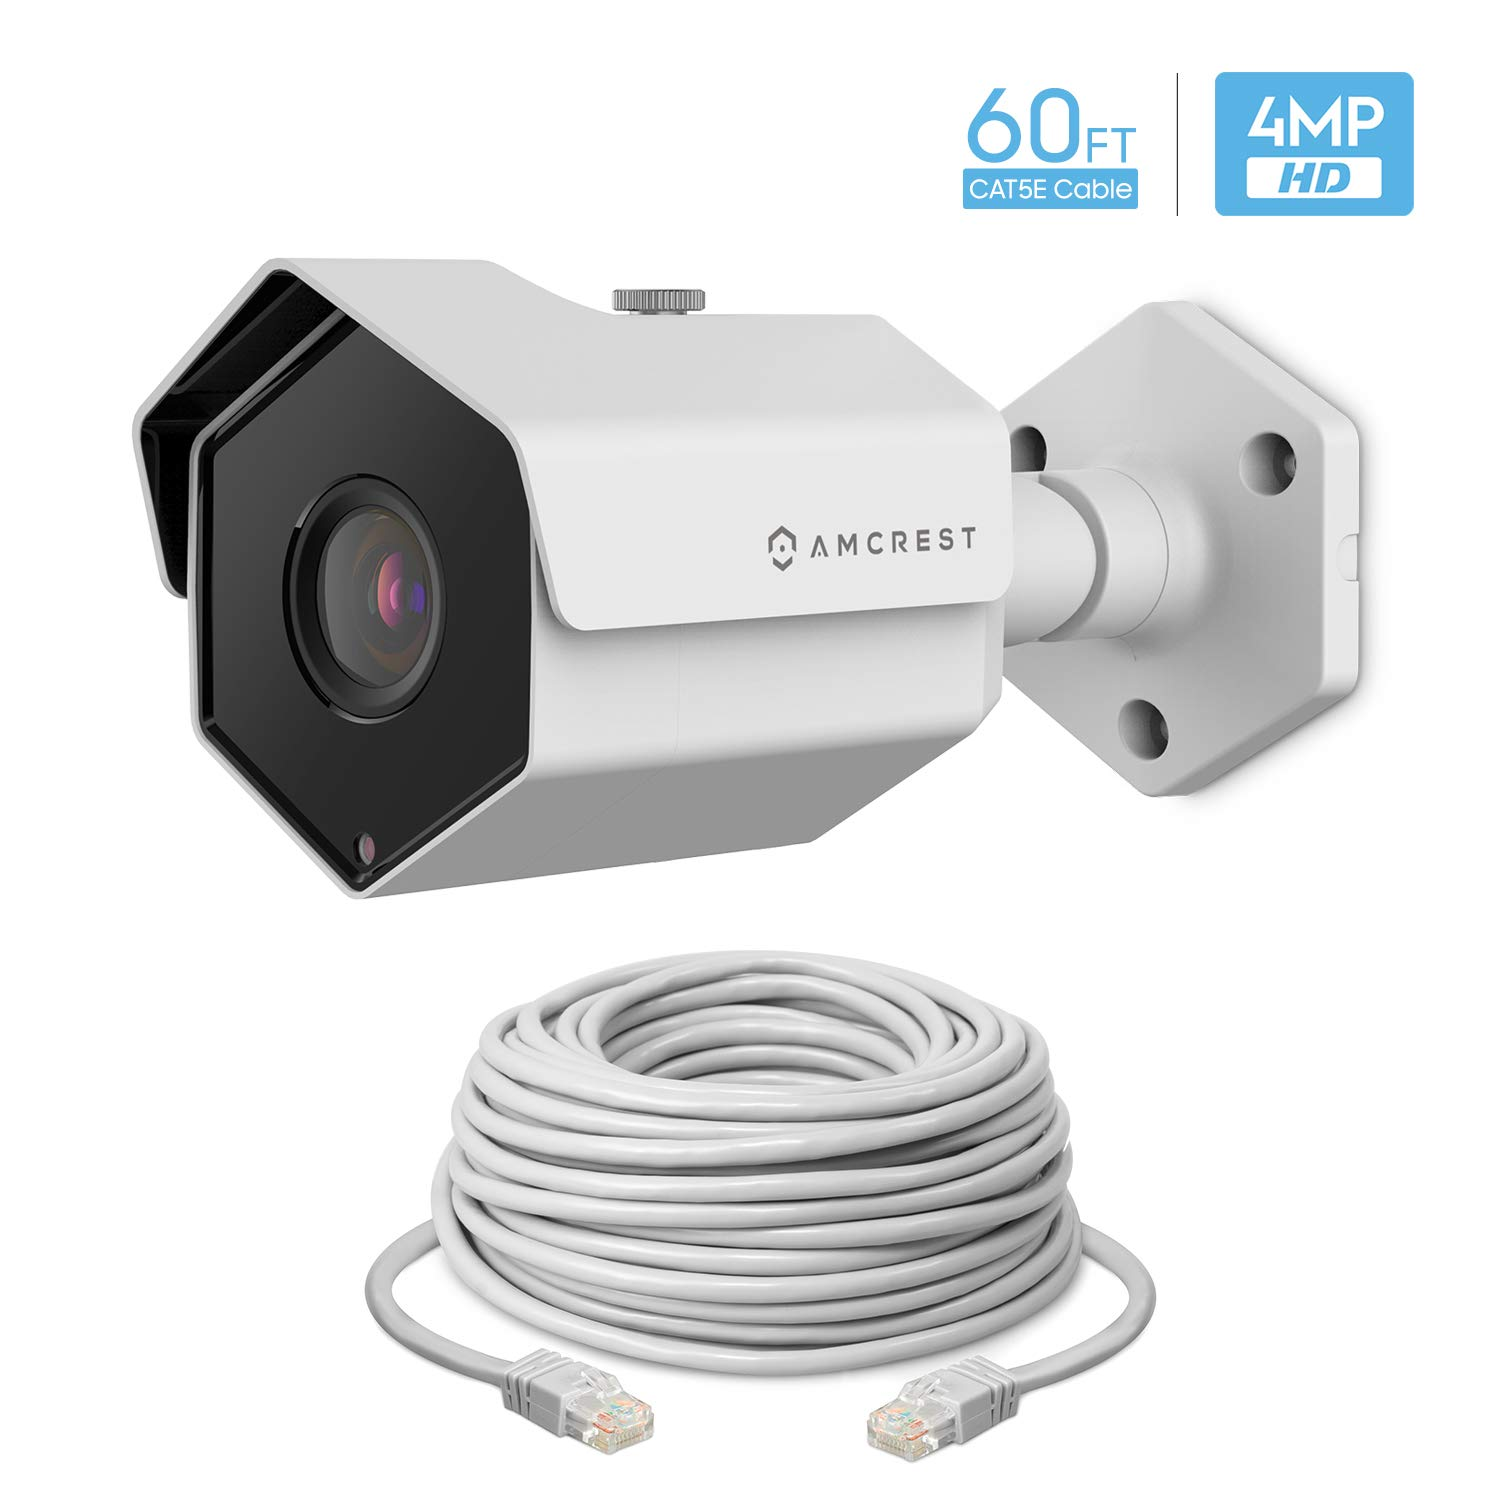 Amcrest UltraHD 4MP Outdoor POE Camera 2688 x 1520p Bullet IP Security Camera, Outdoor IP67 Waterproof, 118 Viewing Angle, 60 feet Cat5 Ethernet Cable, 4-Megapixel, IP4M-1026EW-CAT5ECABLE60 White